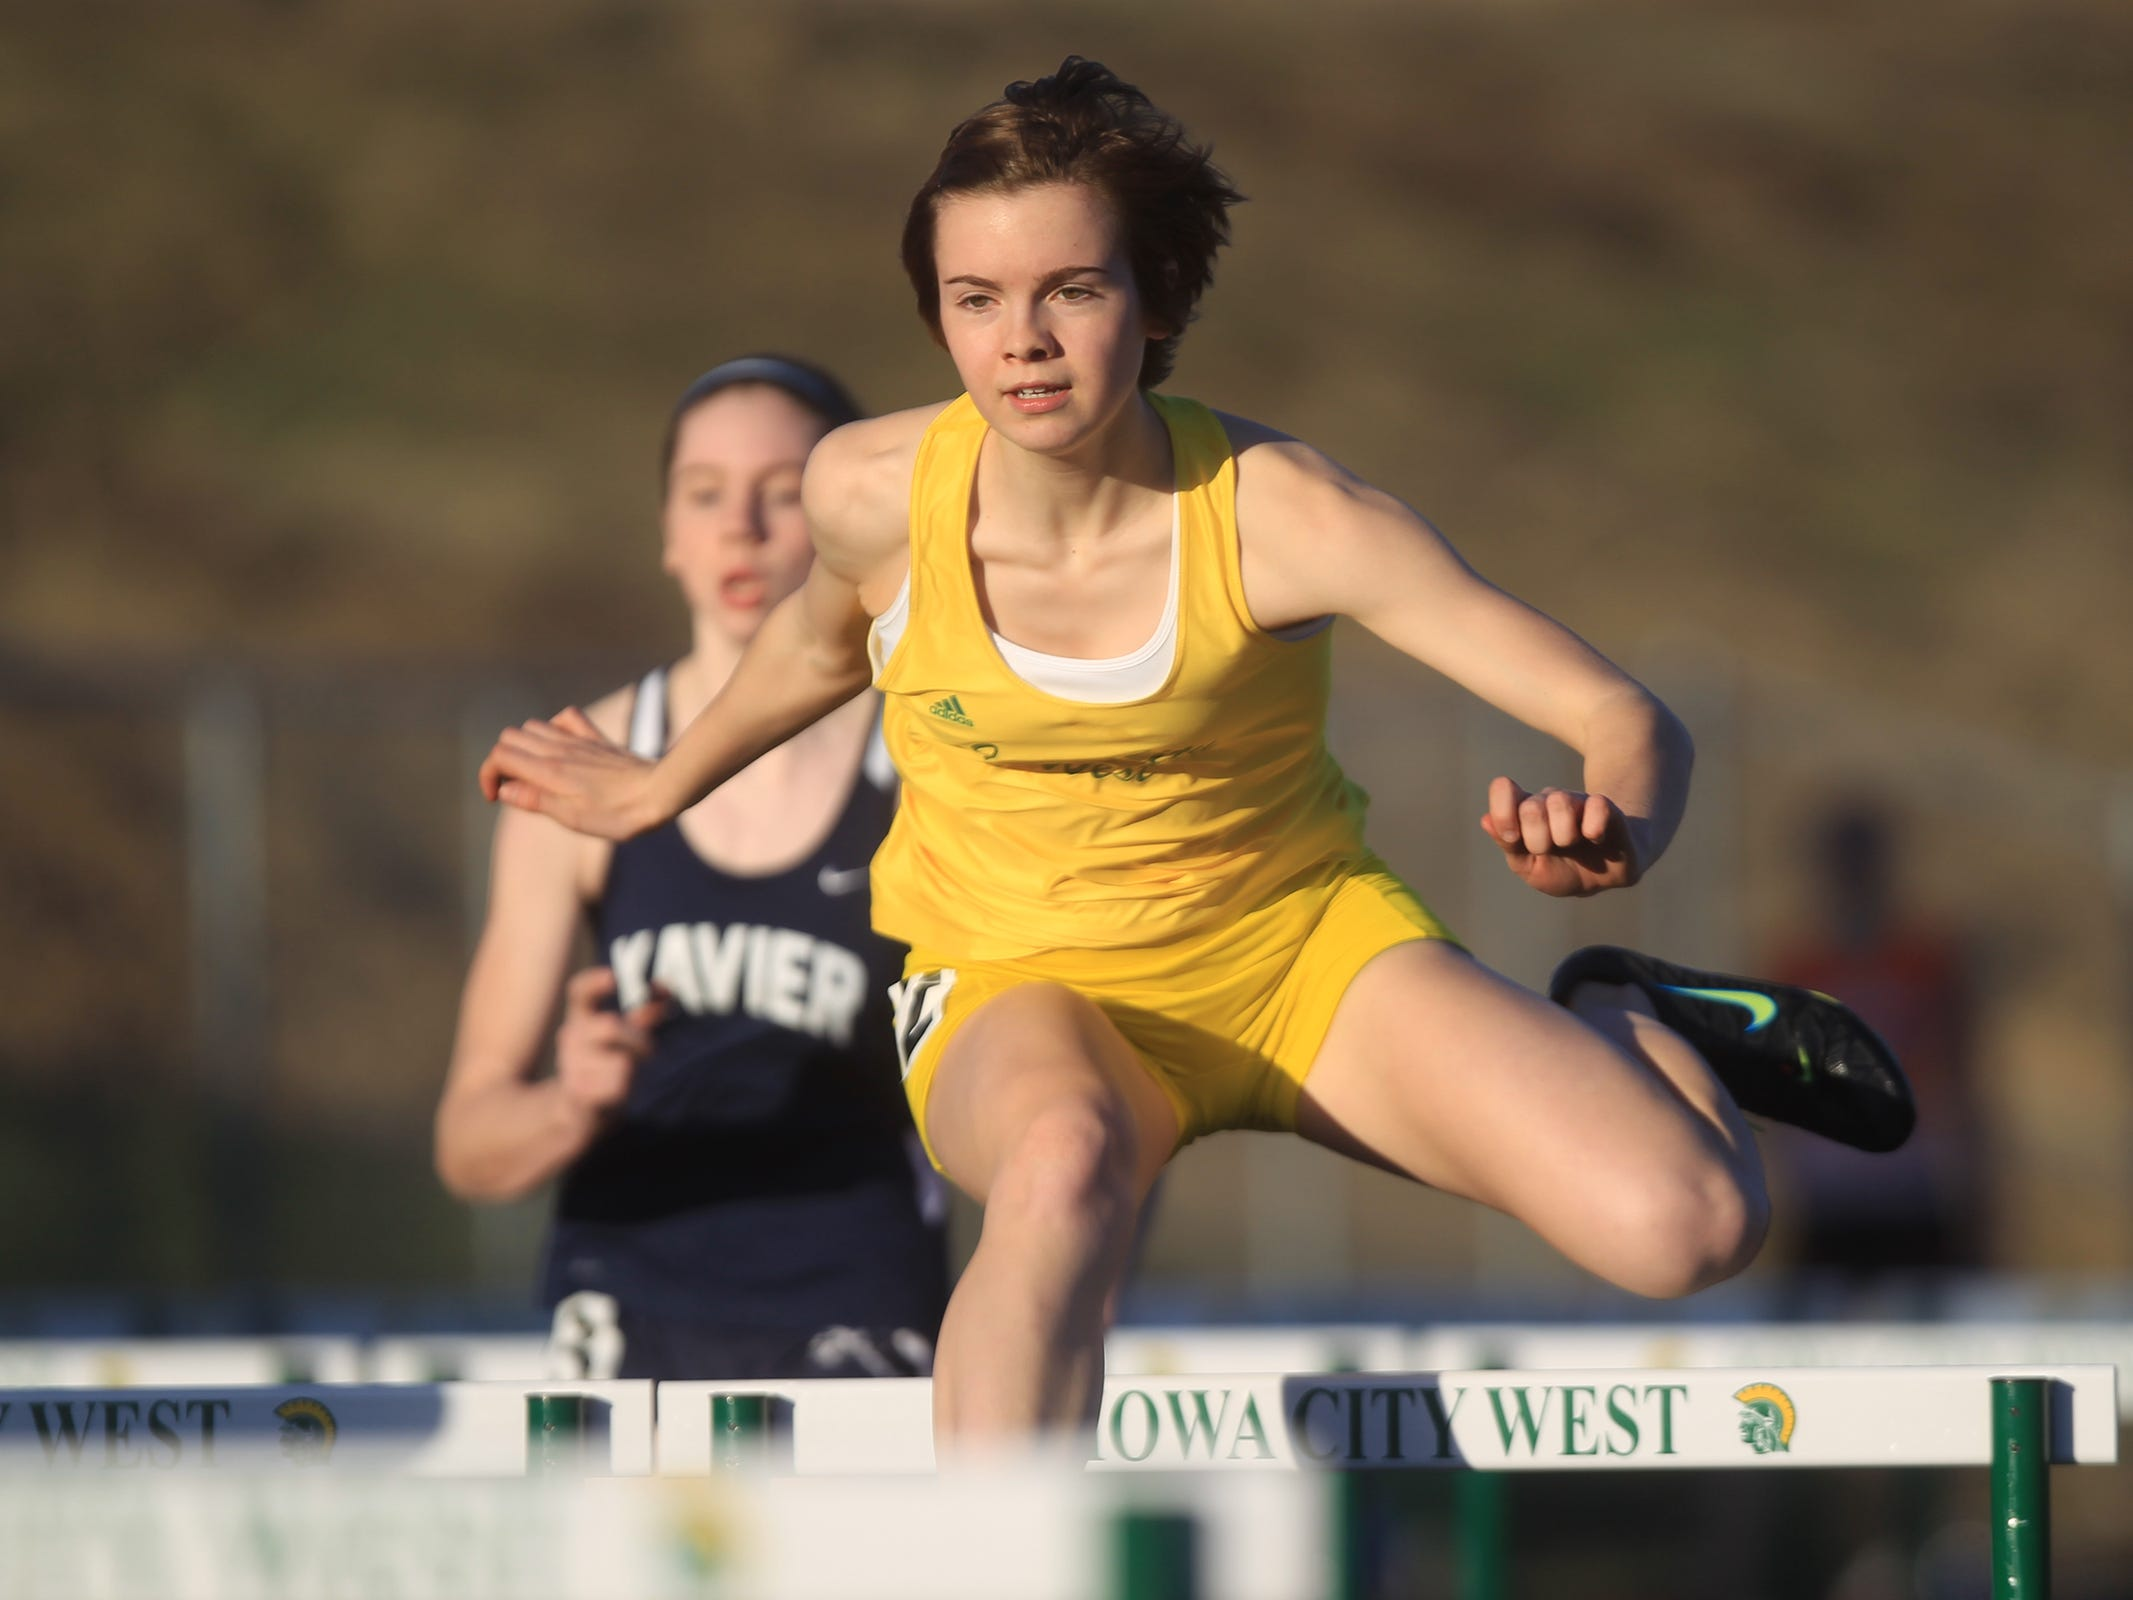 West High's Grace Young competes in the 100 meter hurdles at the Women of Troy Relays at West High on Tuesday, March 31, 2015. David Scrivner / Iowa City Press-Citizen